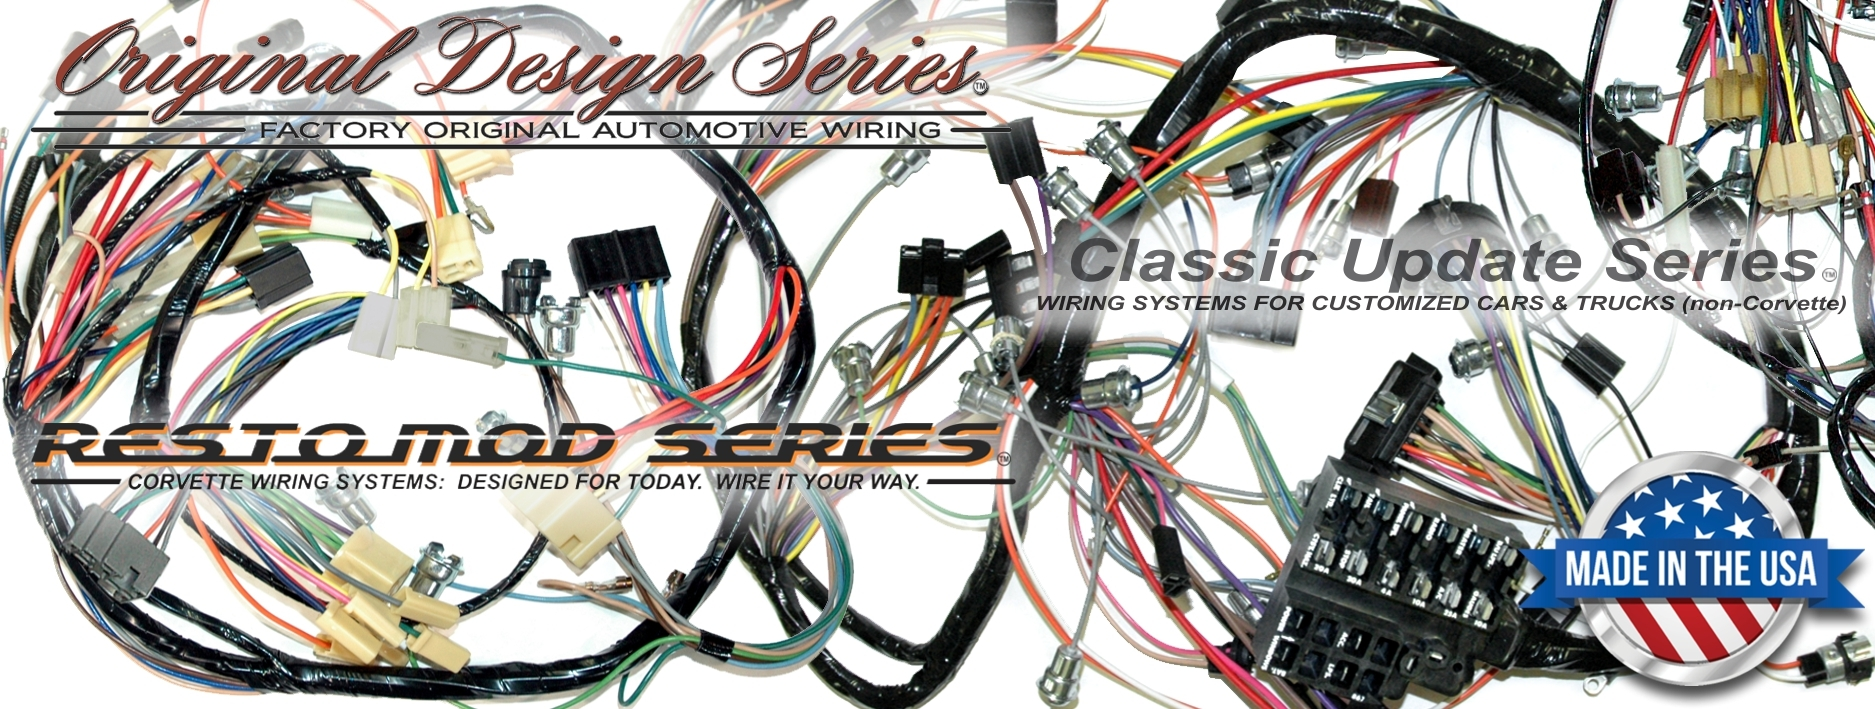 new header wiring_harnesses exact oem reproduction wiring harnesses and restomod wiring c3 corvette engine wiring harness at creativeand.co